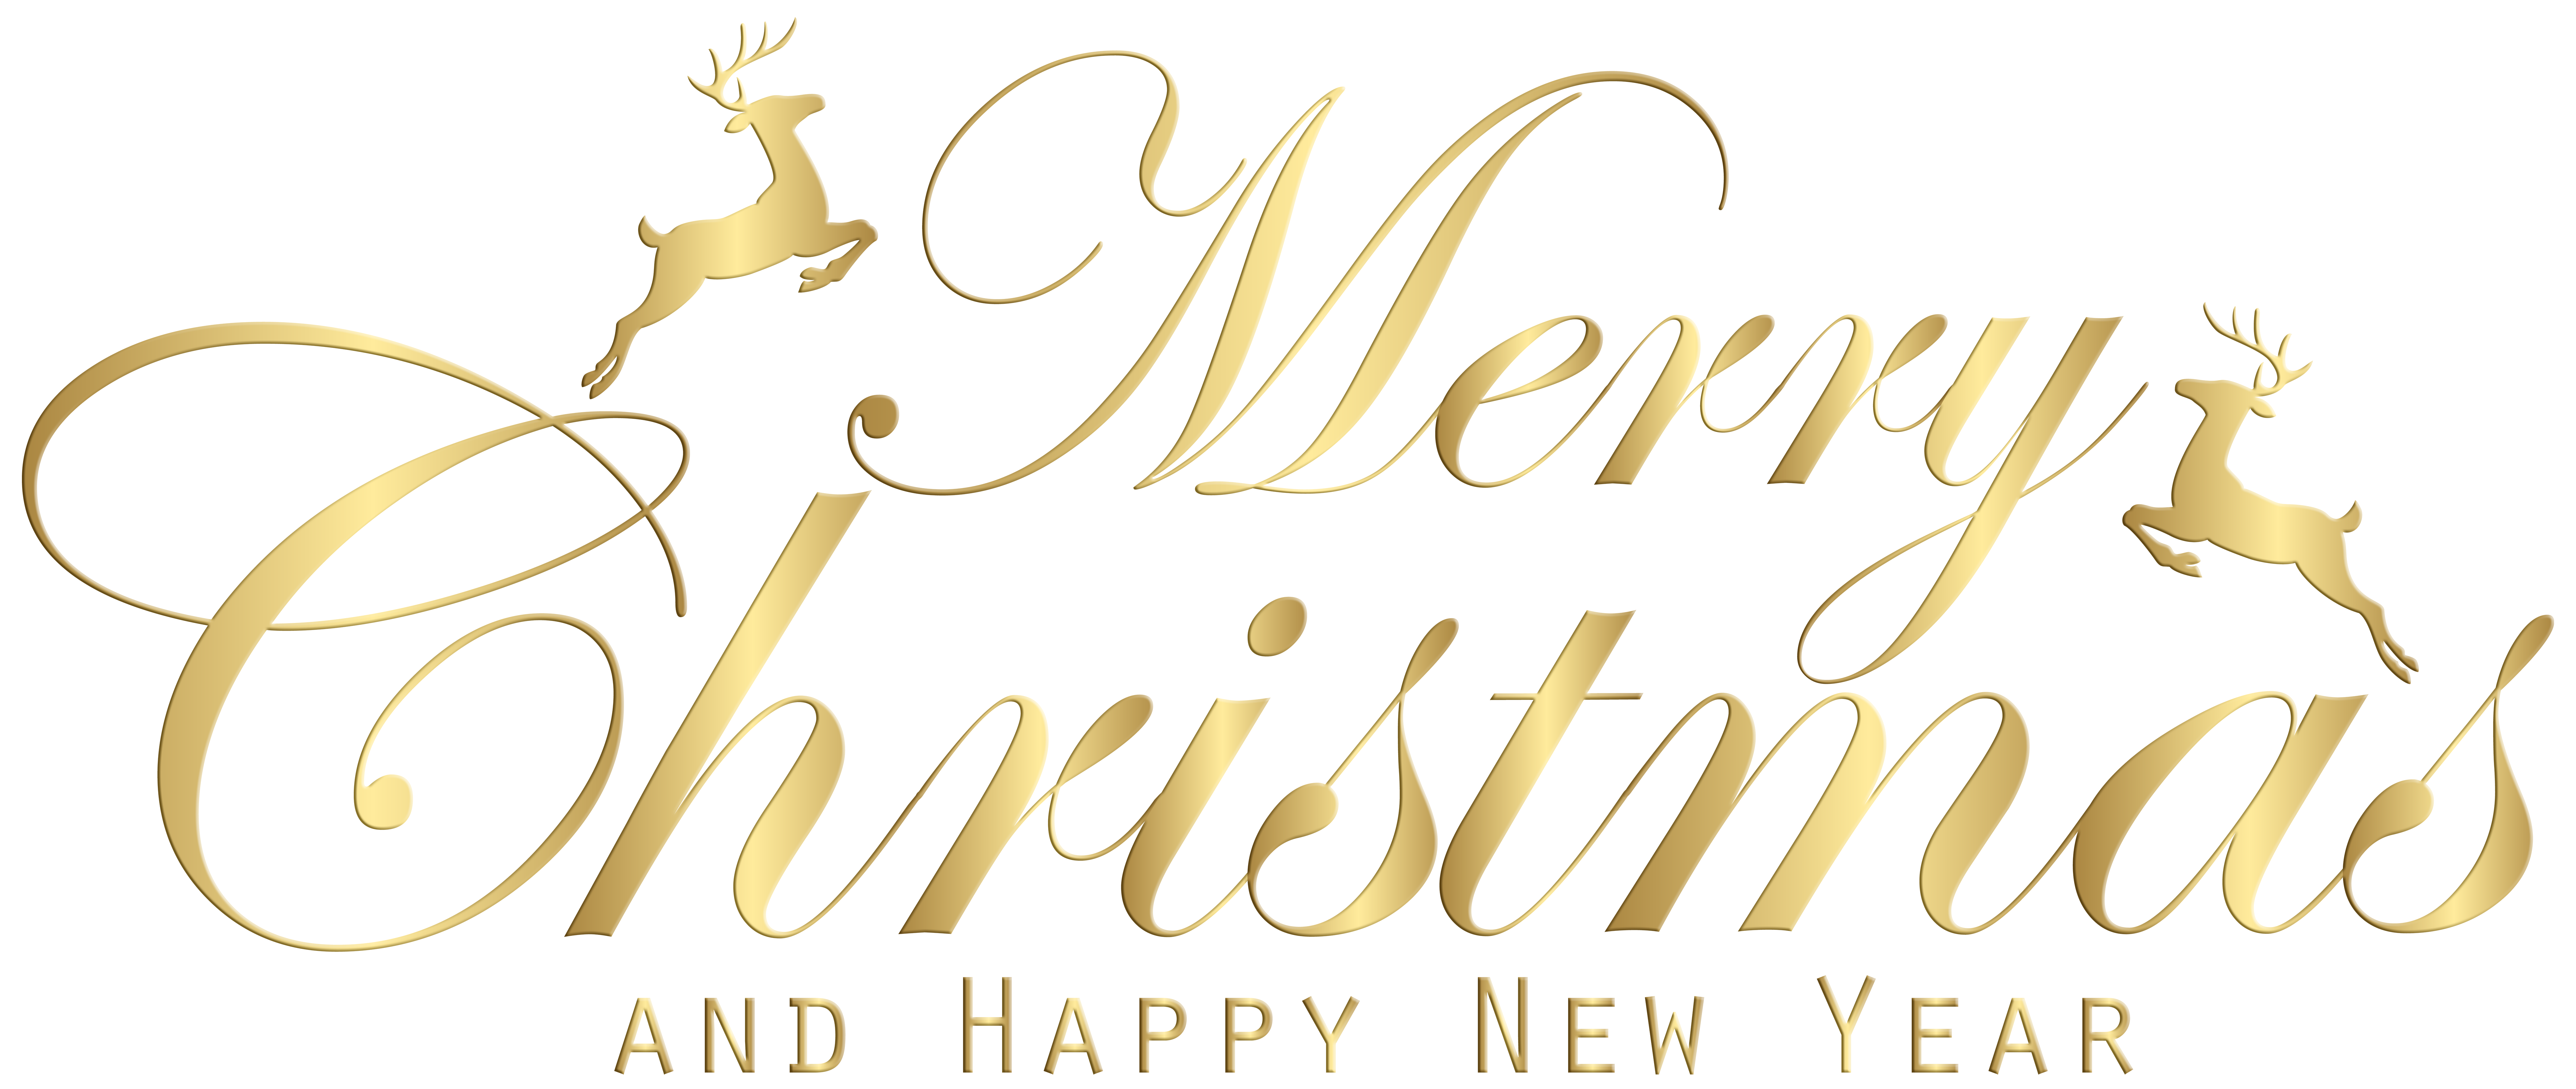 New years eve png background for photography. Merry christmas gold transparent